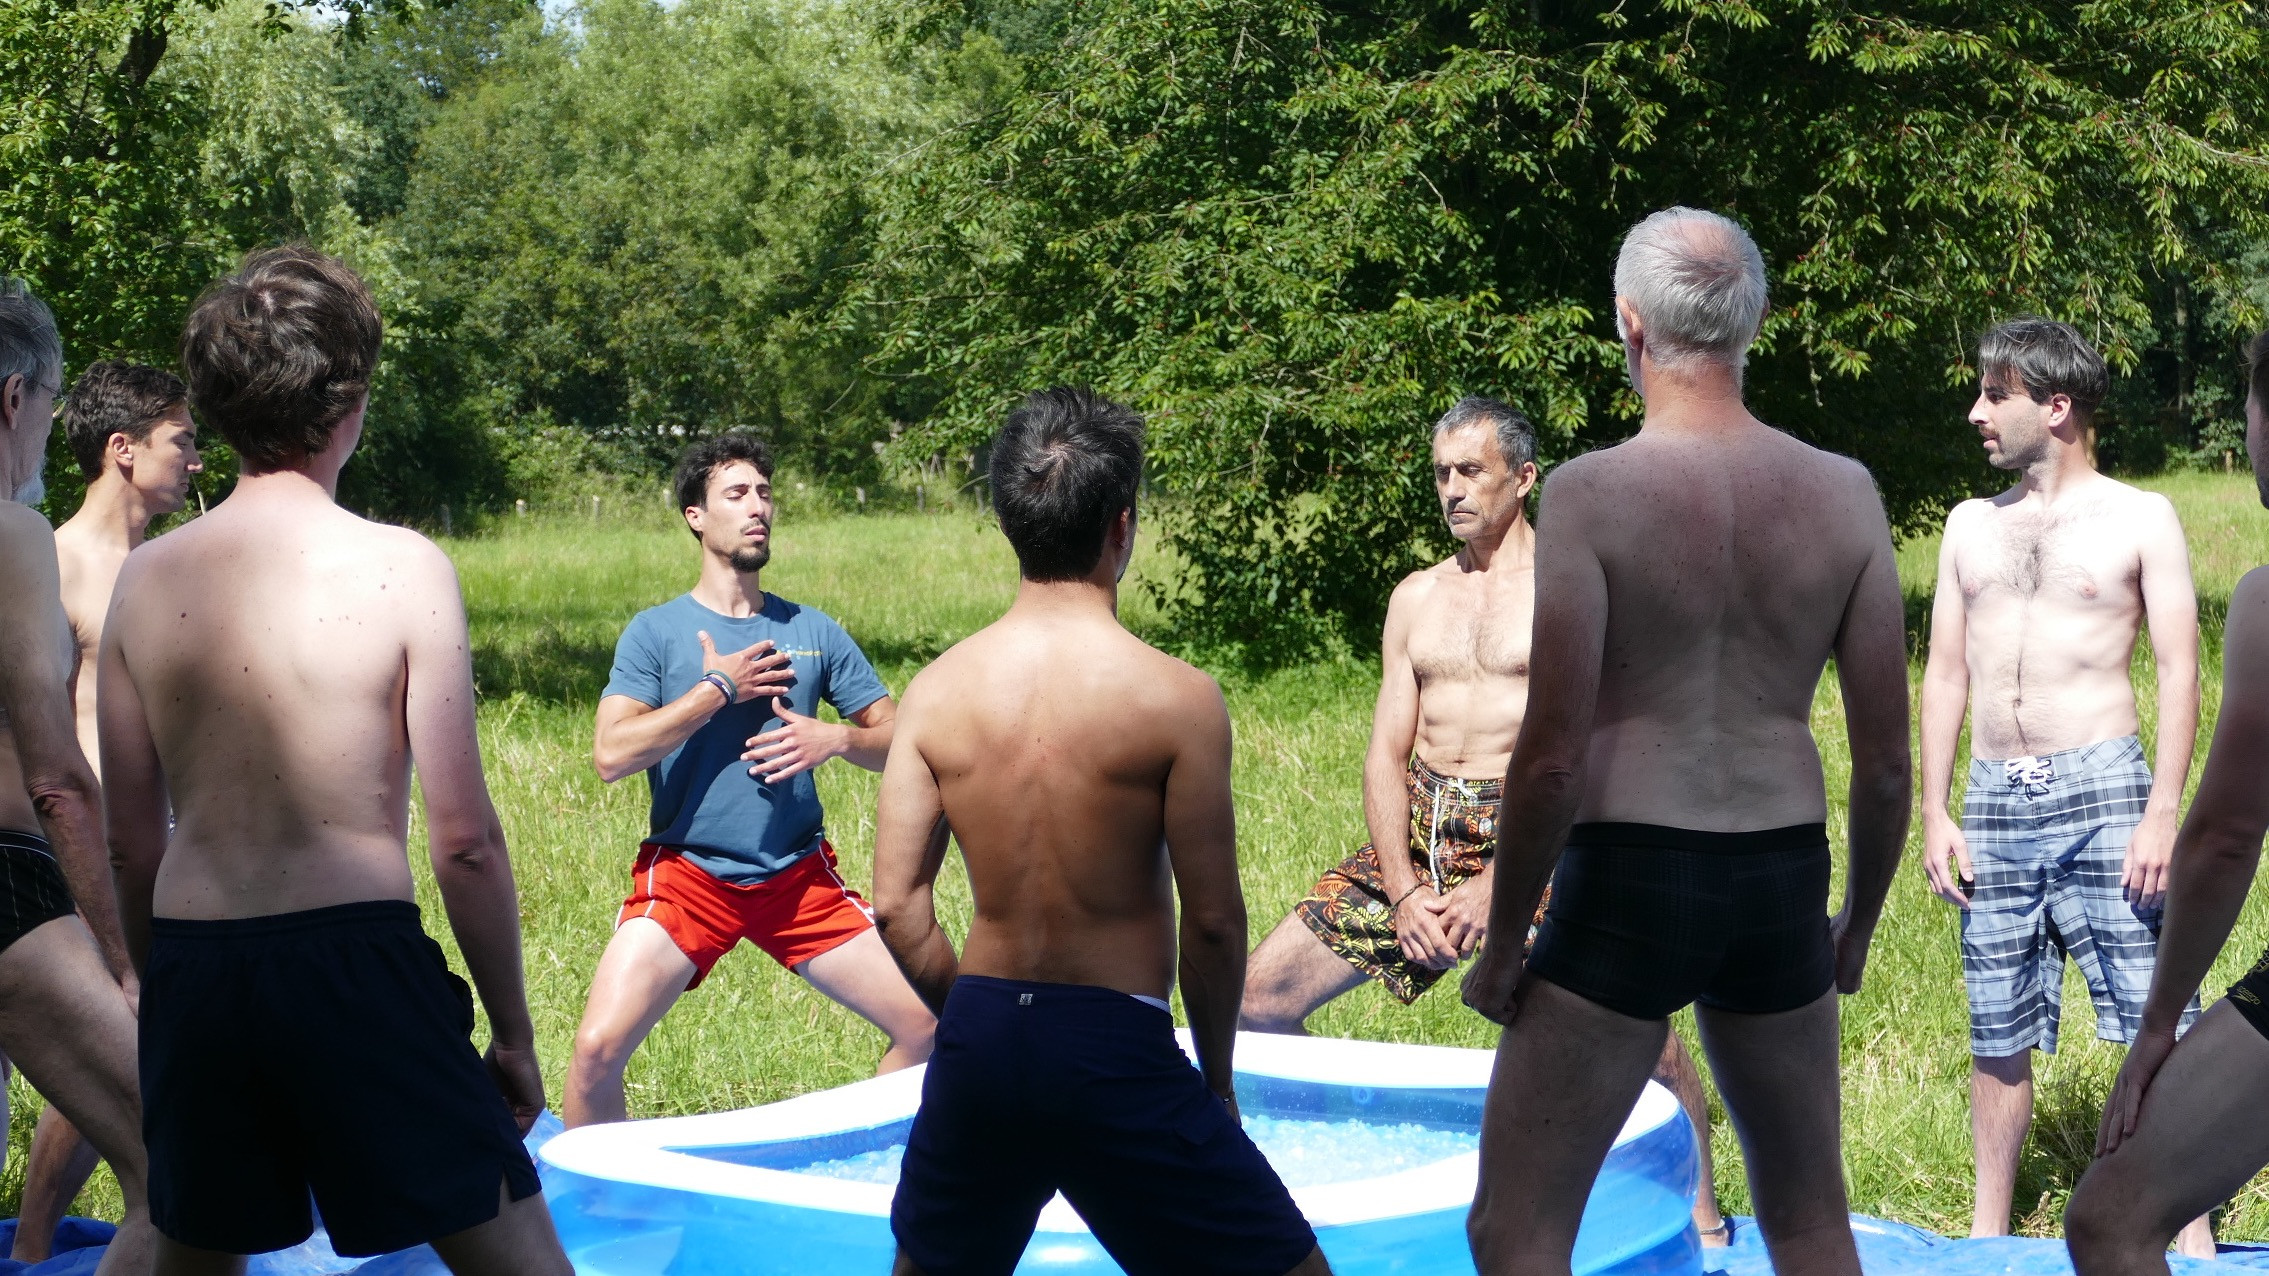 Image 7 of 9 - Experience Ice Bath to get an impression of WHM Fundamentals Workshop at Boissy-lès-Perche